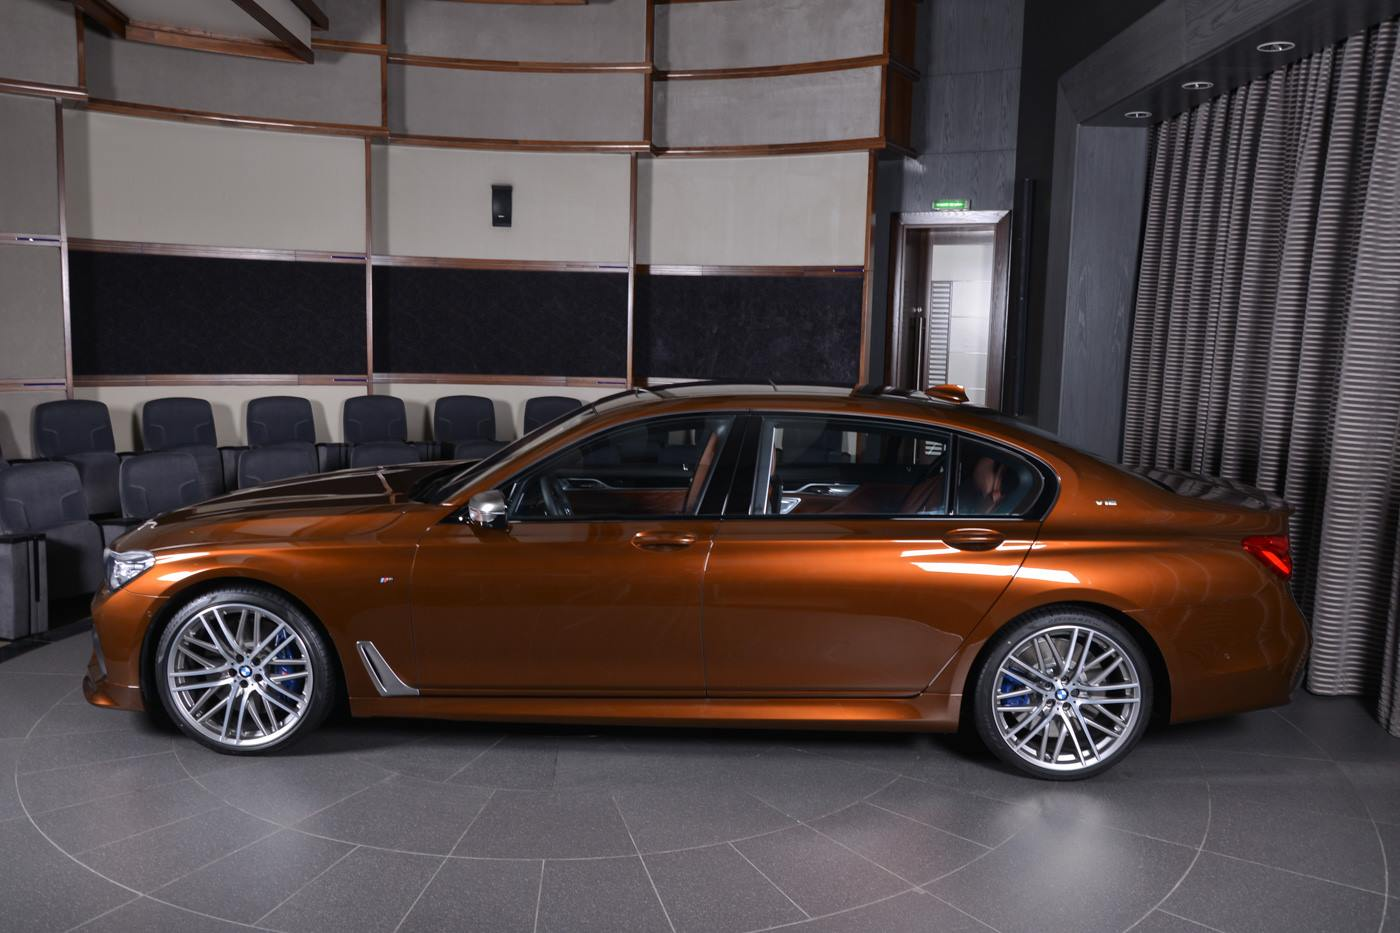 Chestnut Bronze Bmw M760li Xdrive Looks Rather Classy